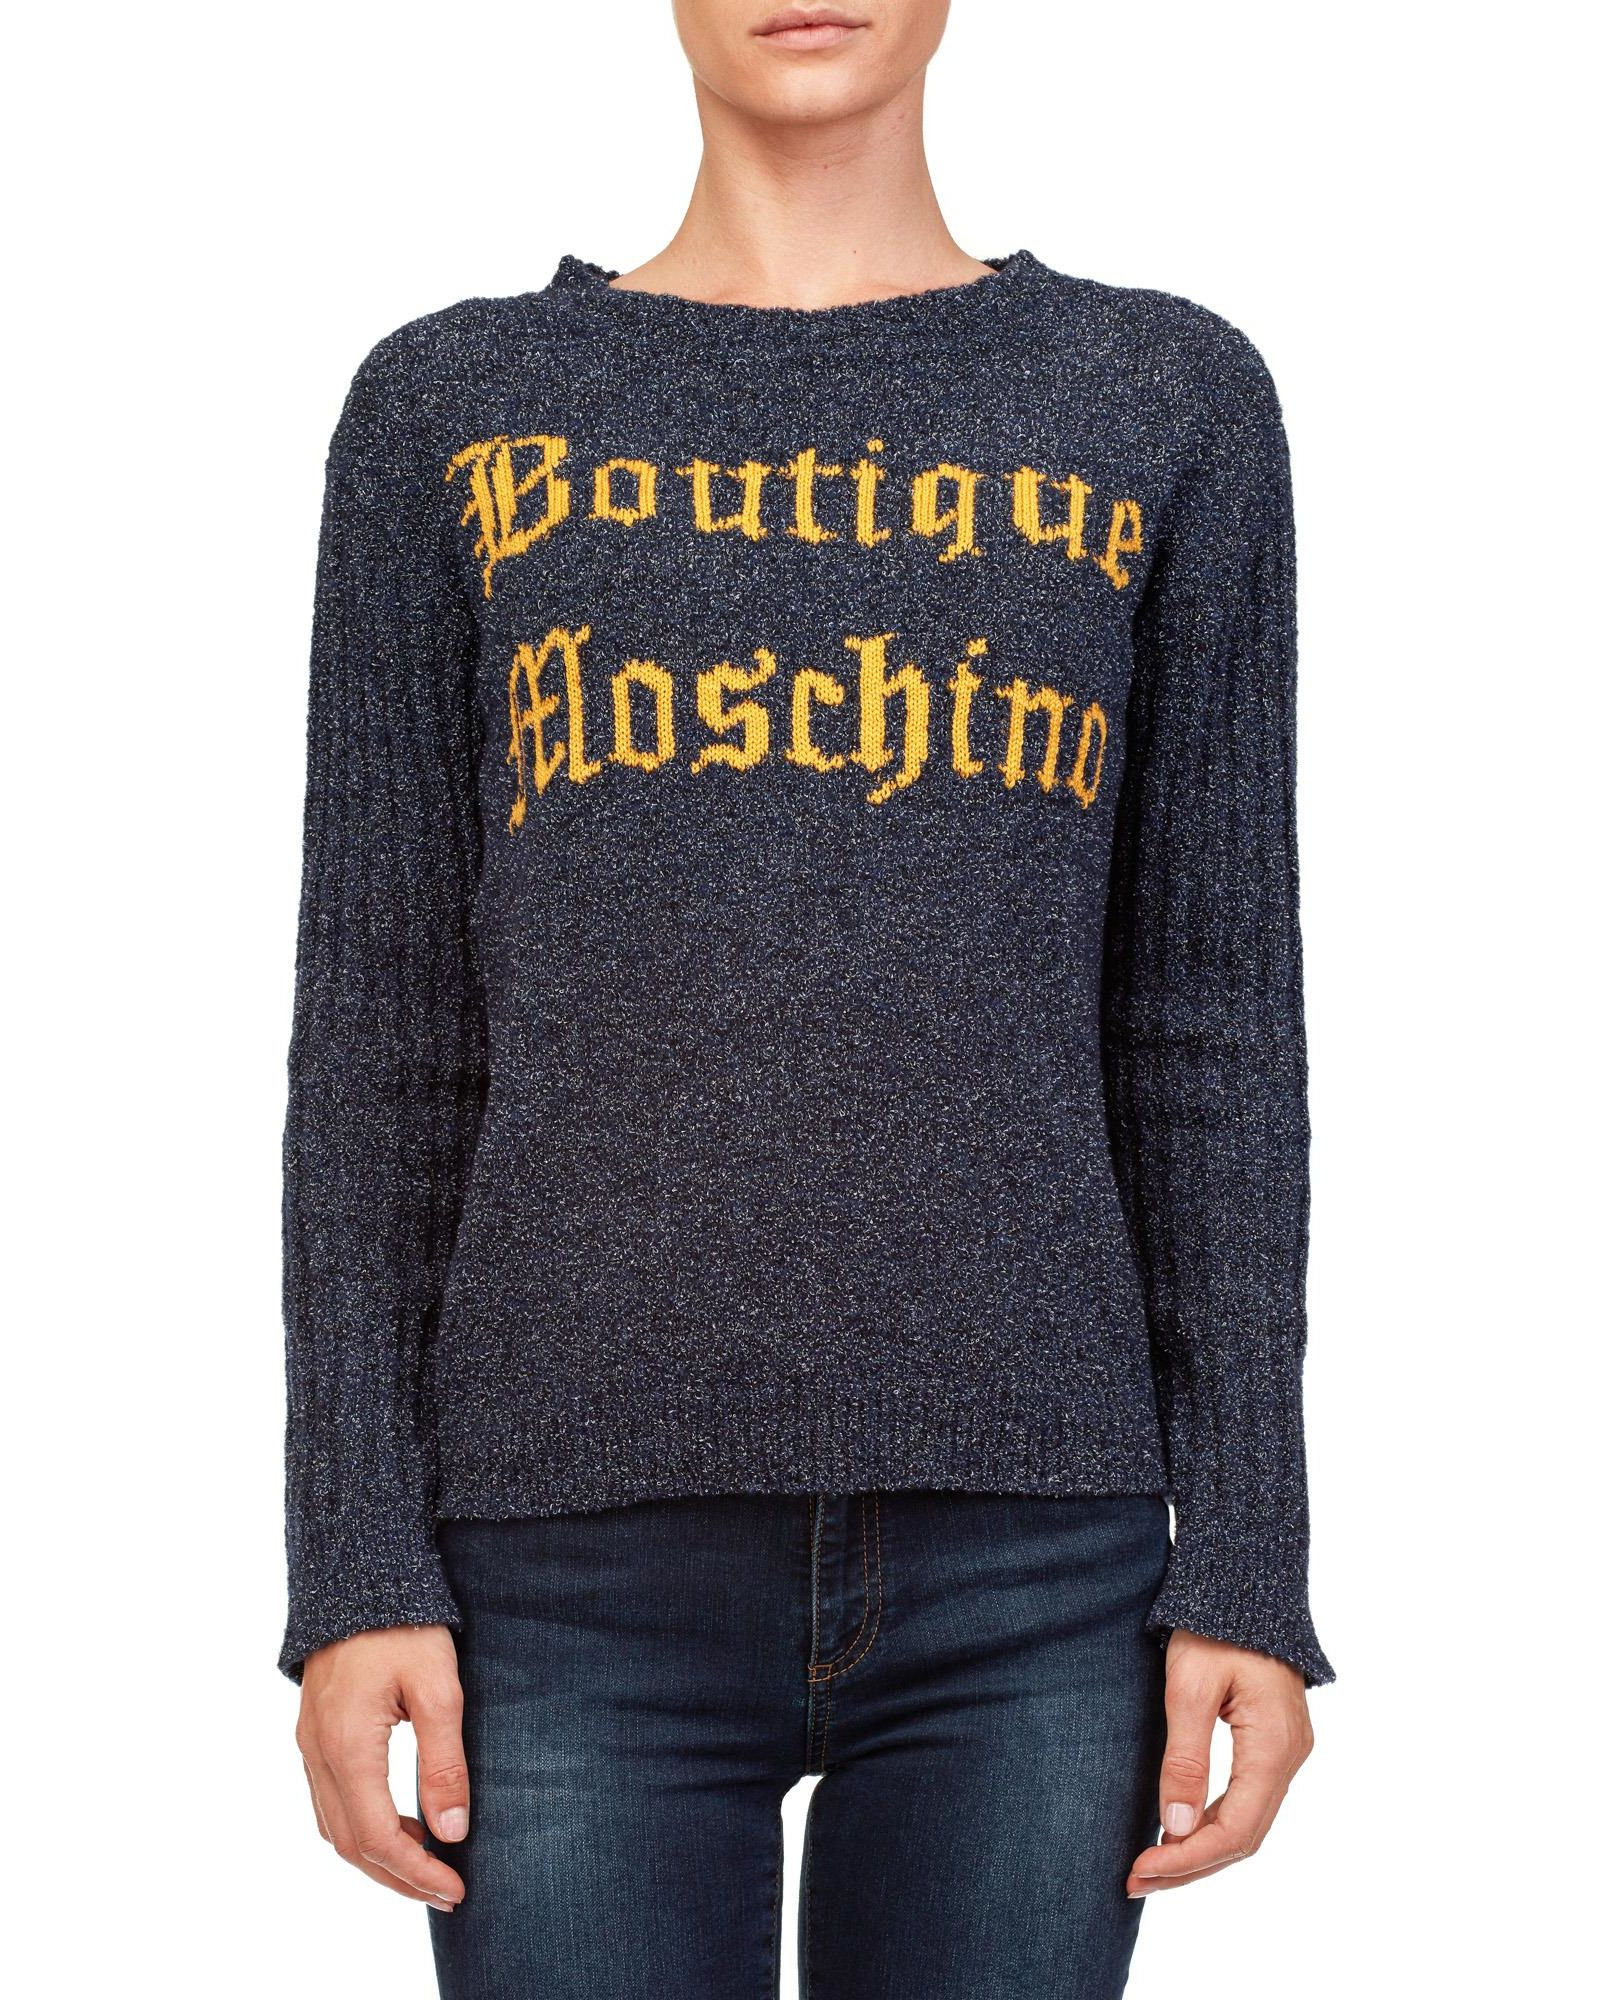 Boutique Moschino Wool Blend Sweater